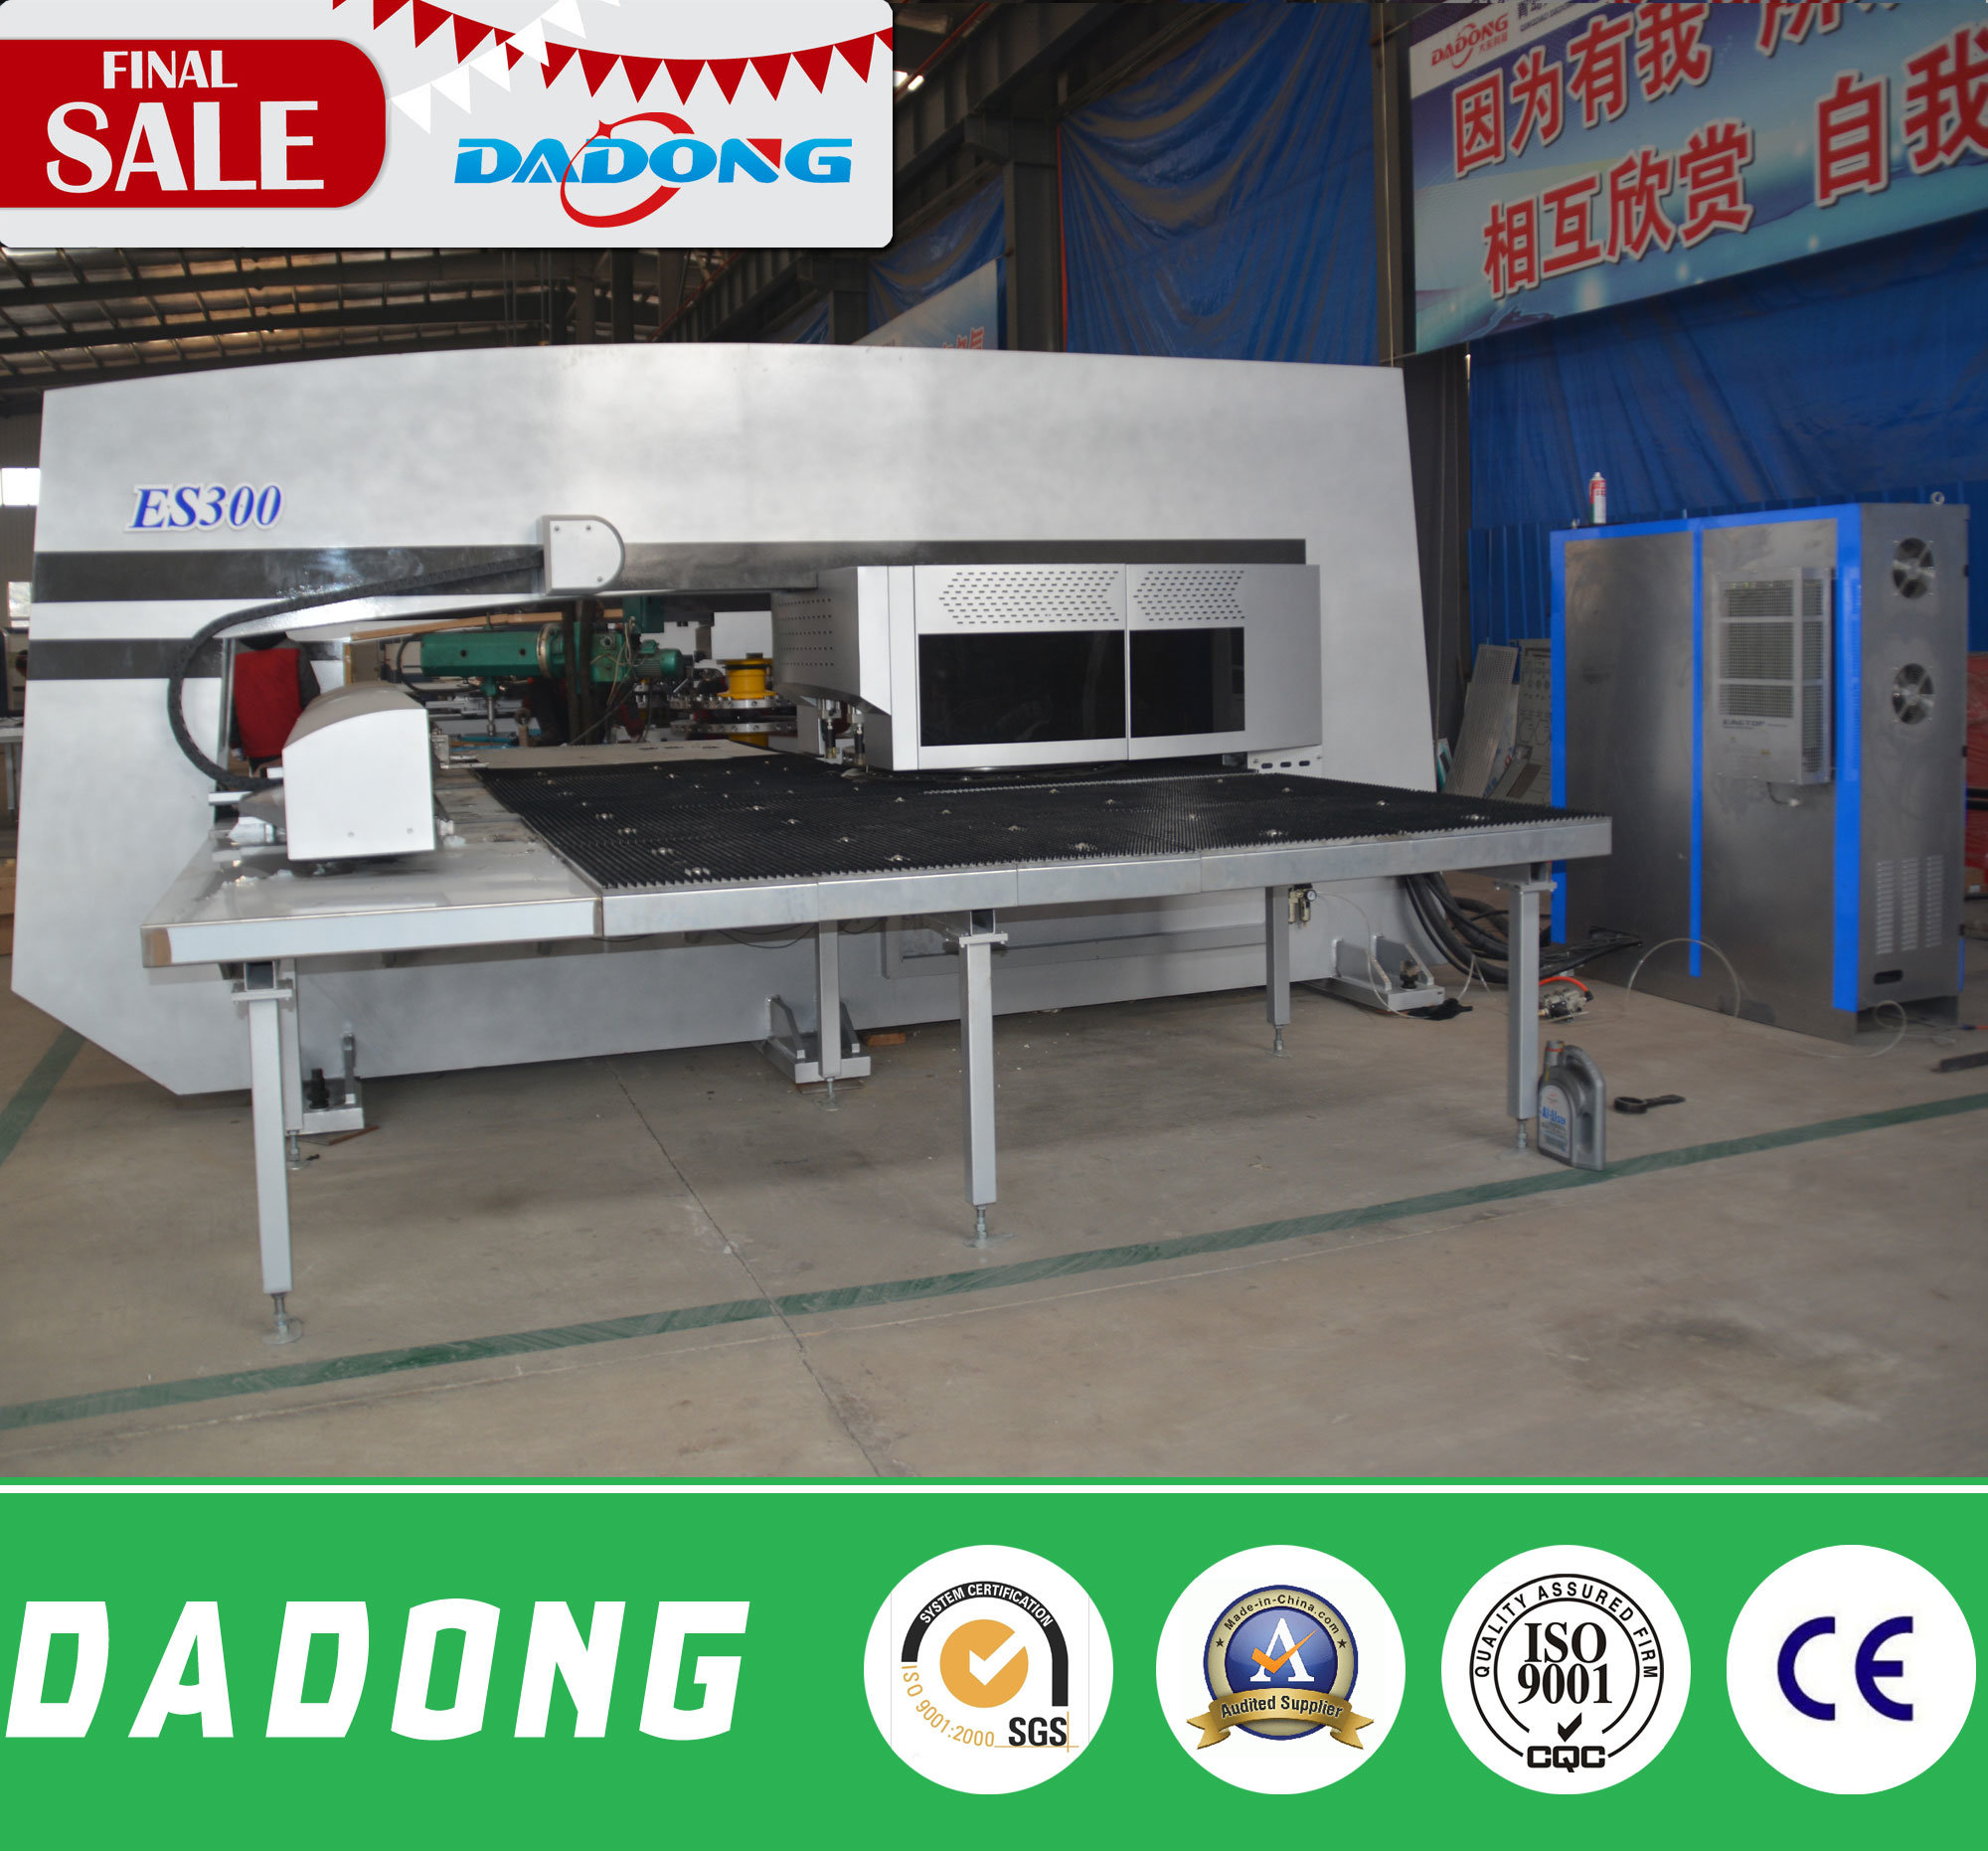 ES300 CNC Servo Turret Punch Press Machine for Sheet Metal Perforator/SGS/Ce/ISO pictures & photos